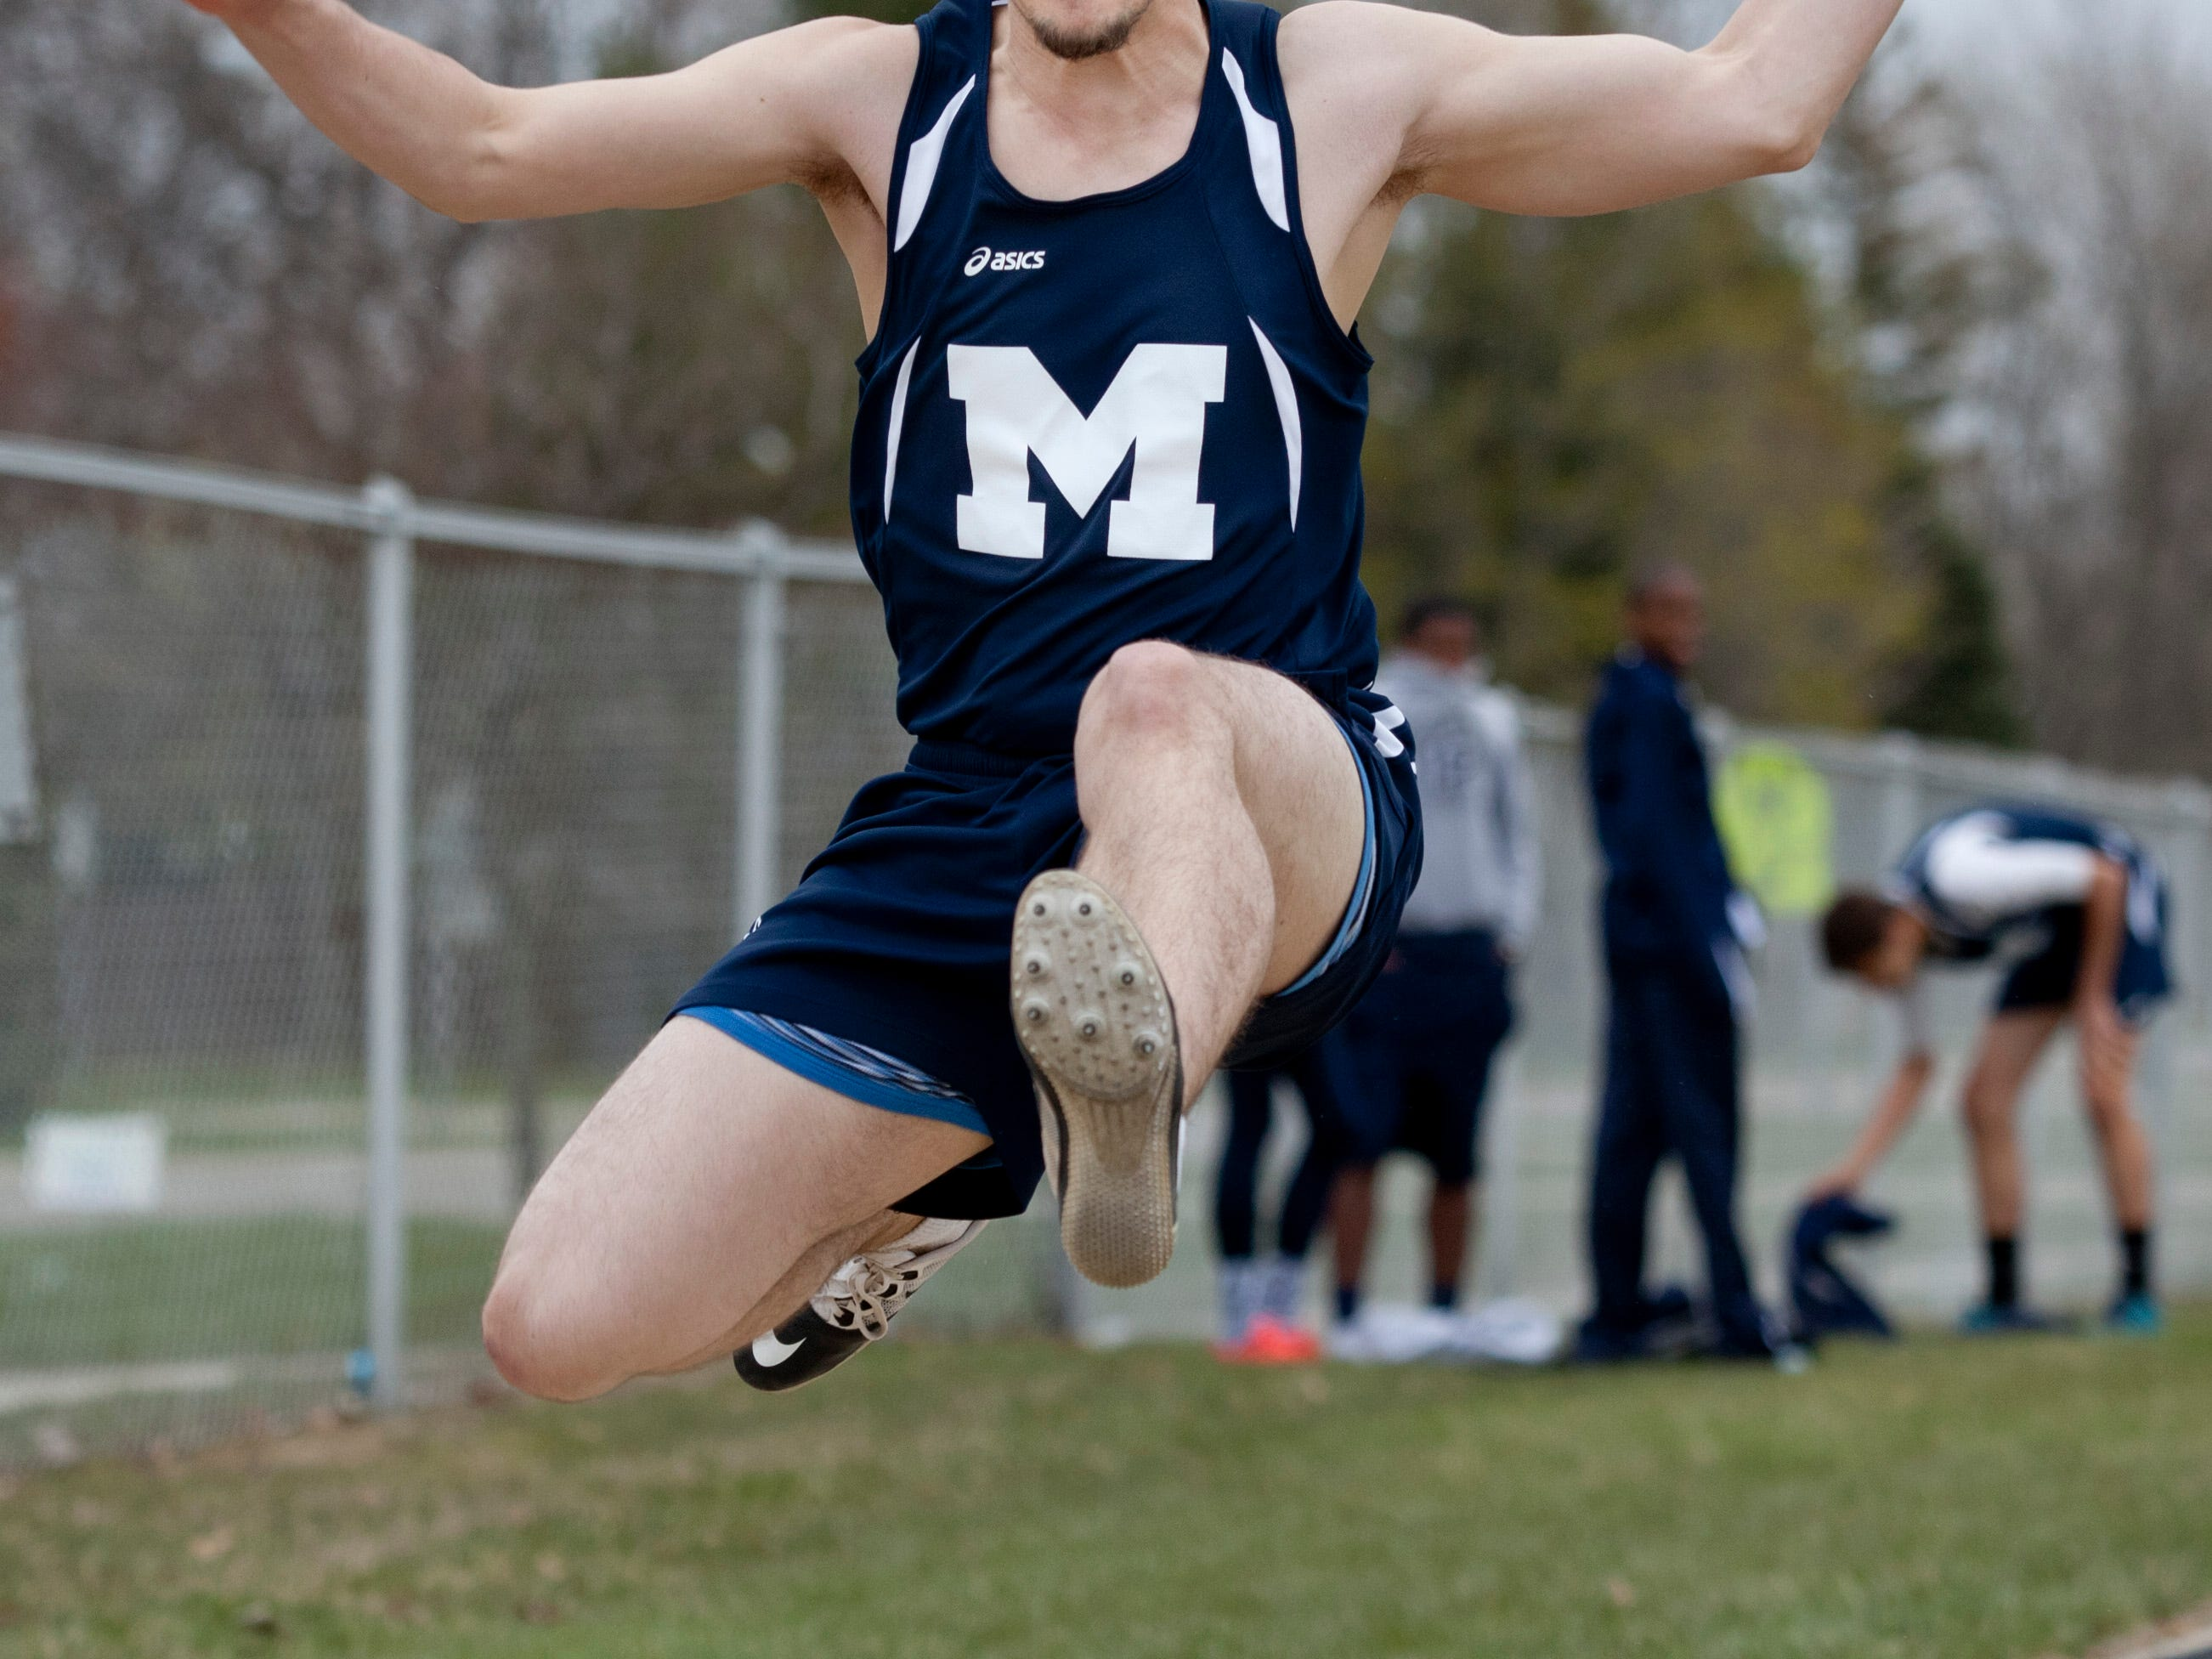 Marysville senior Jared McGeary competes in the long jump during a track meet Thursday, April 30, 2015 at Marysville High School.